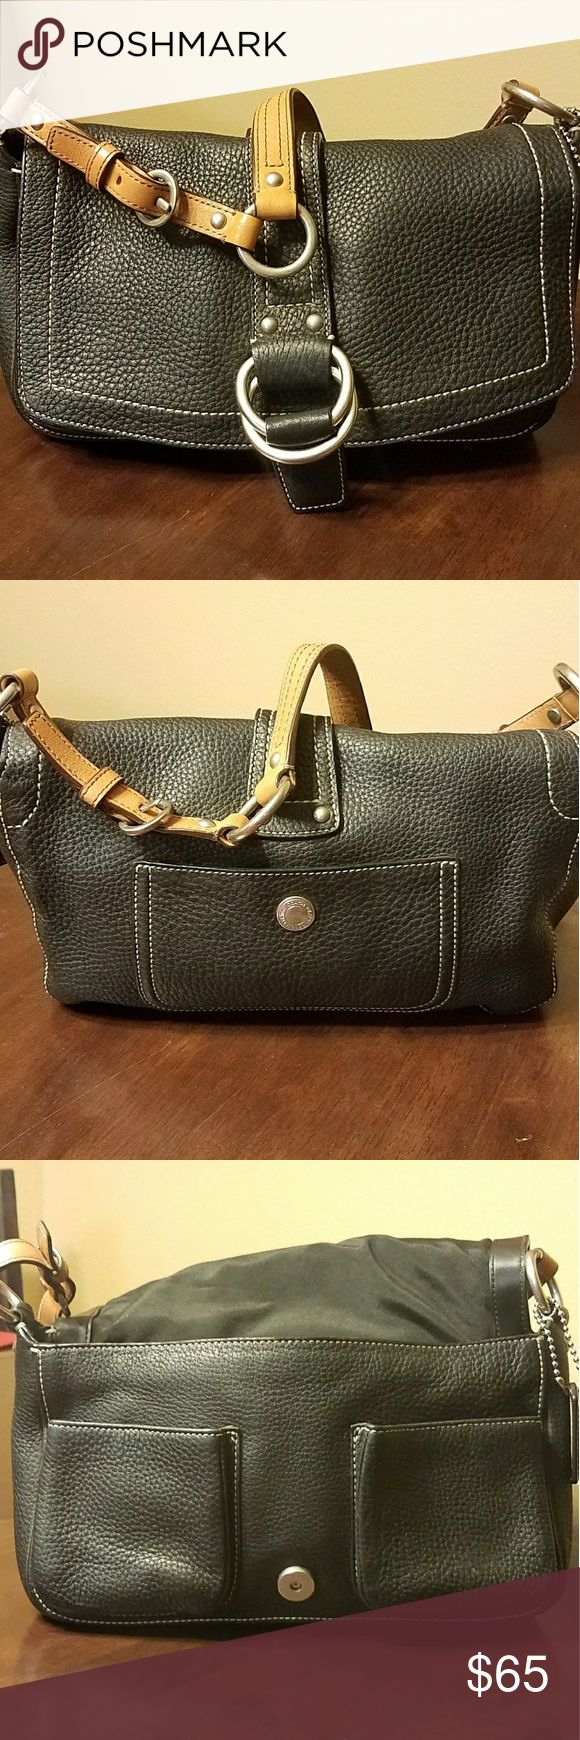 Coach Leather handbag Black/brown leather handbag in mint condition. Coach Bags Shoulder Bags